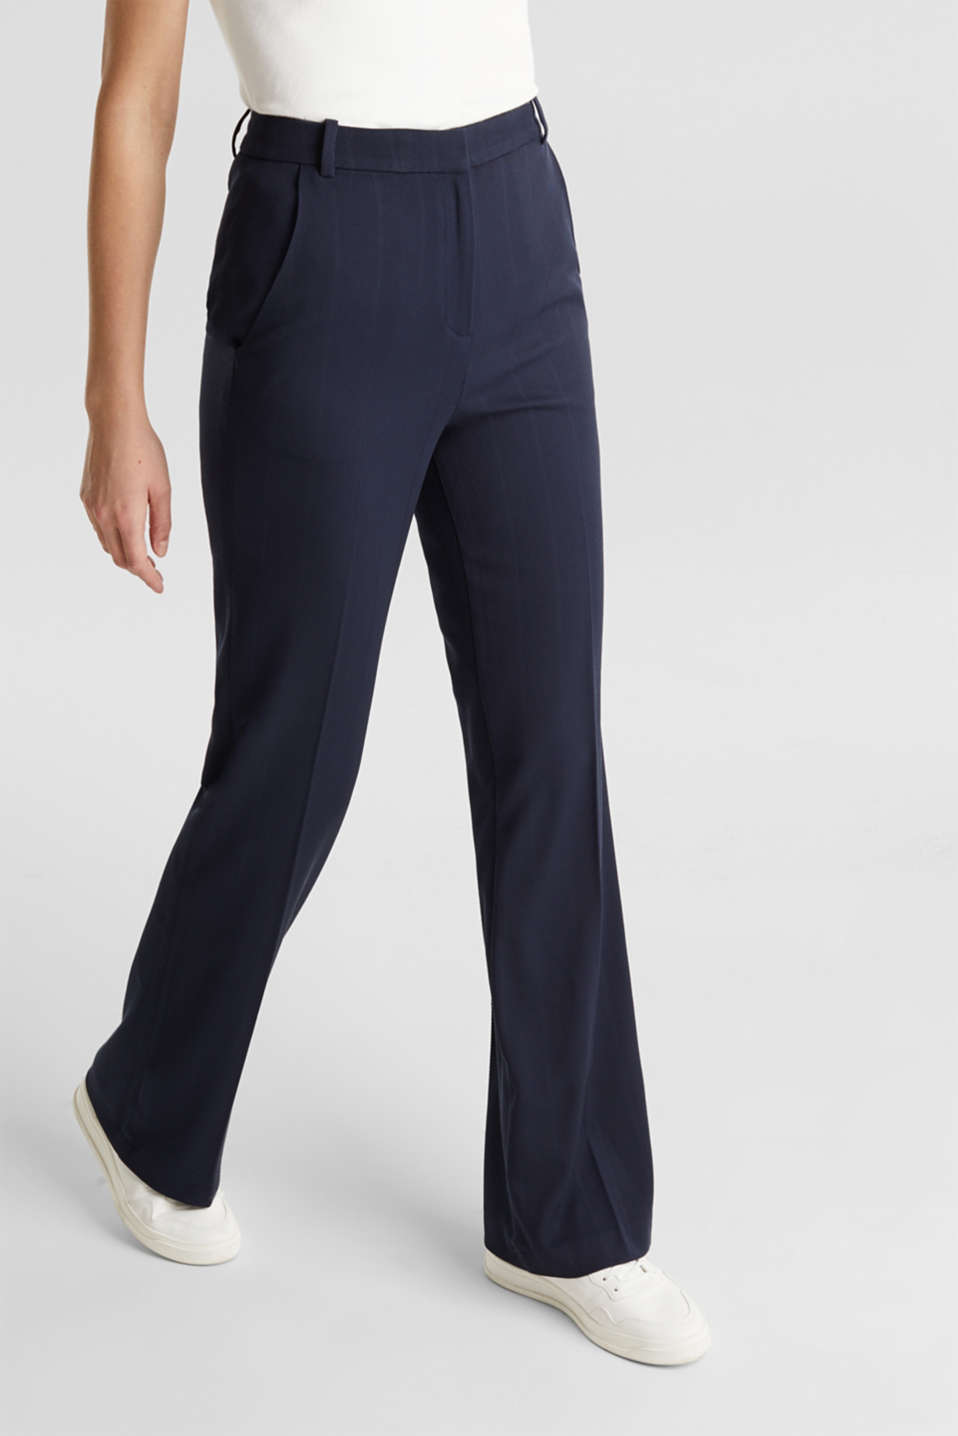 HERRINGBONE Mix + Match stretch trousers, NAVY, detail image number 6